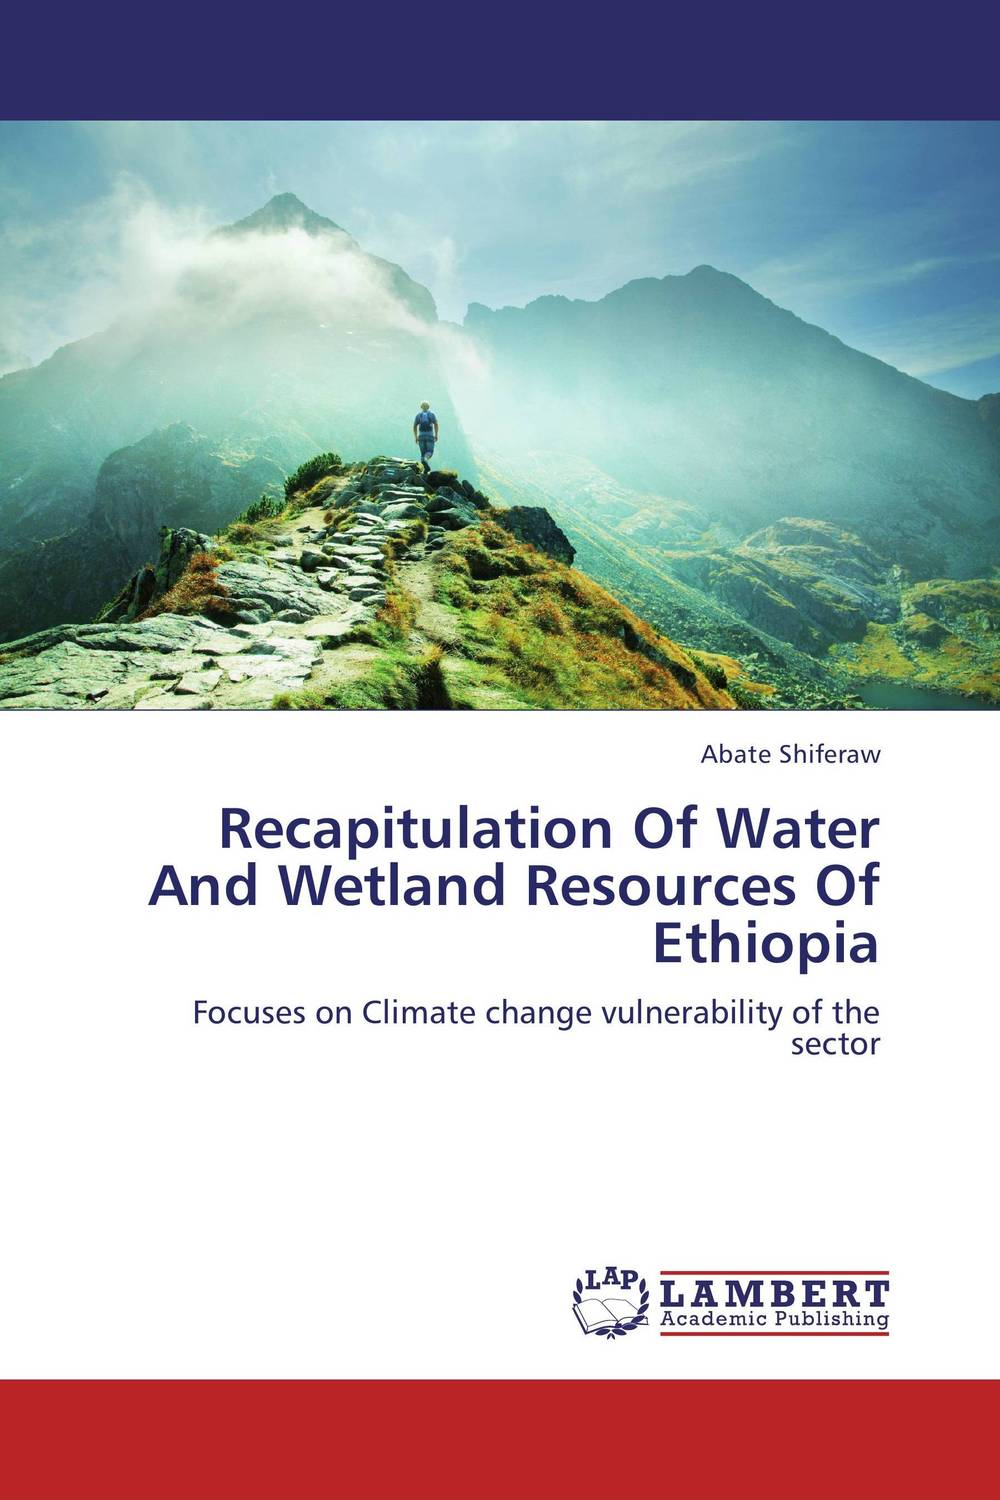 все цены на Recapitulation Of Water And Wetland Resources Of Ethiopia